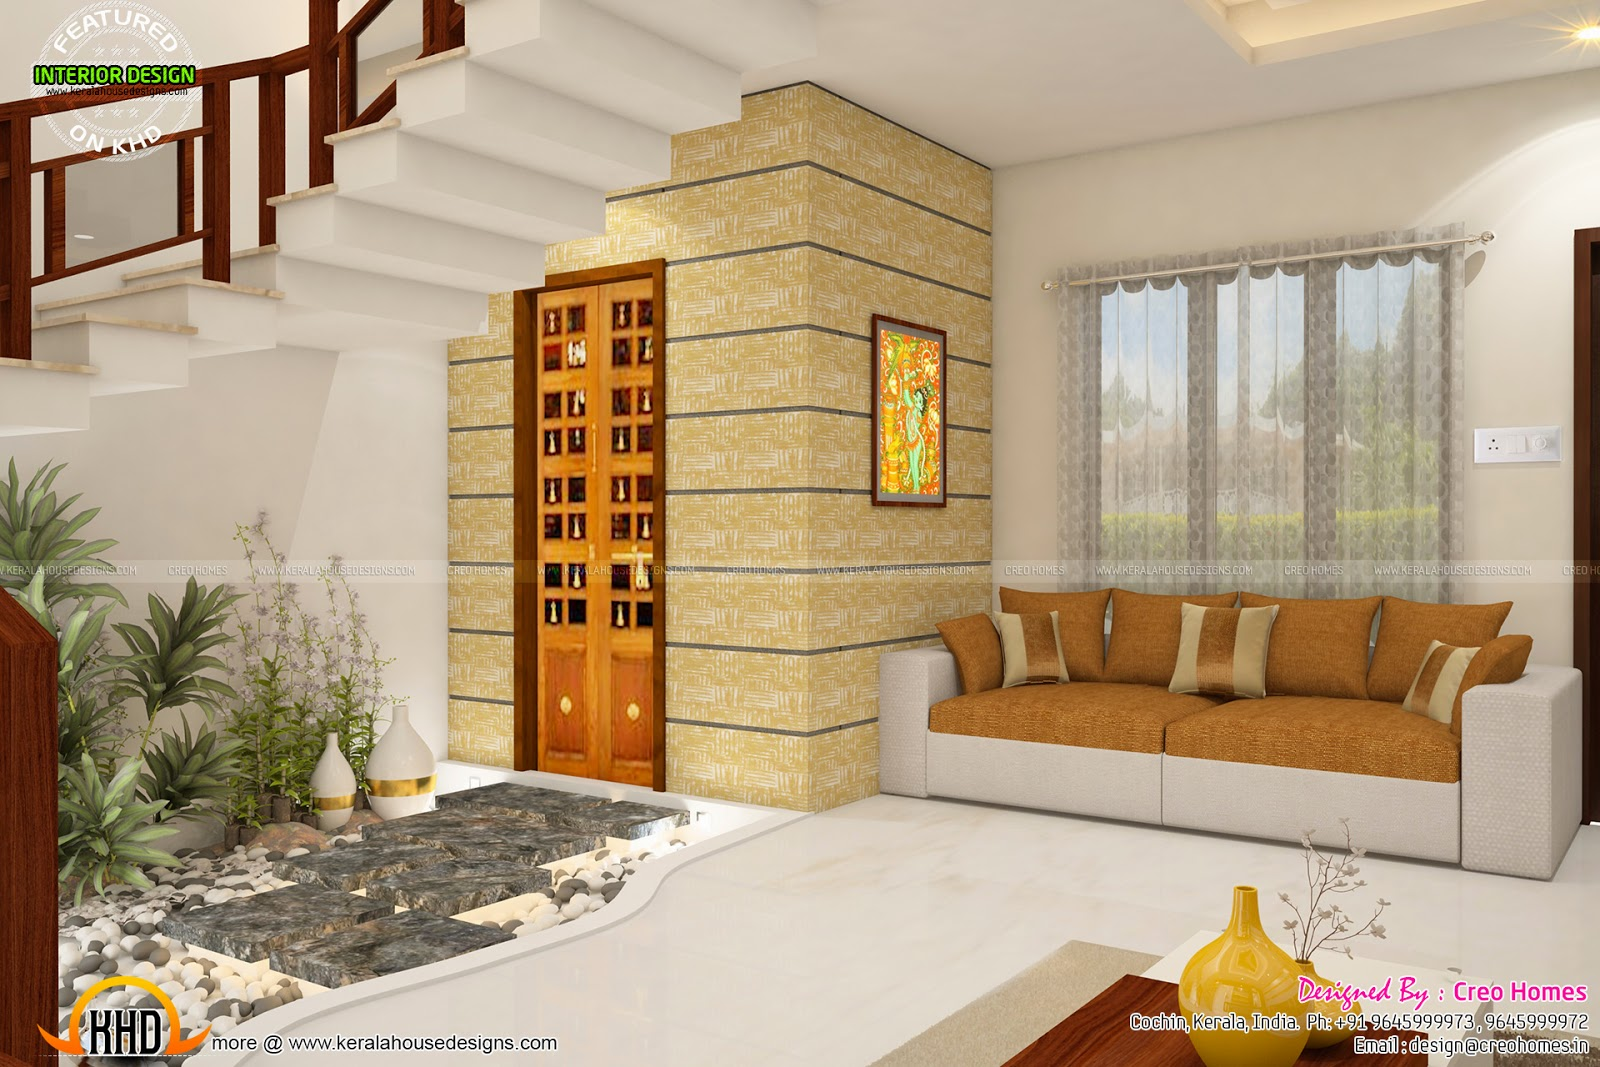 Total home interior solutions by creo homes kerala home for Indoor design in home